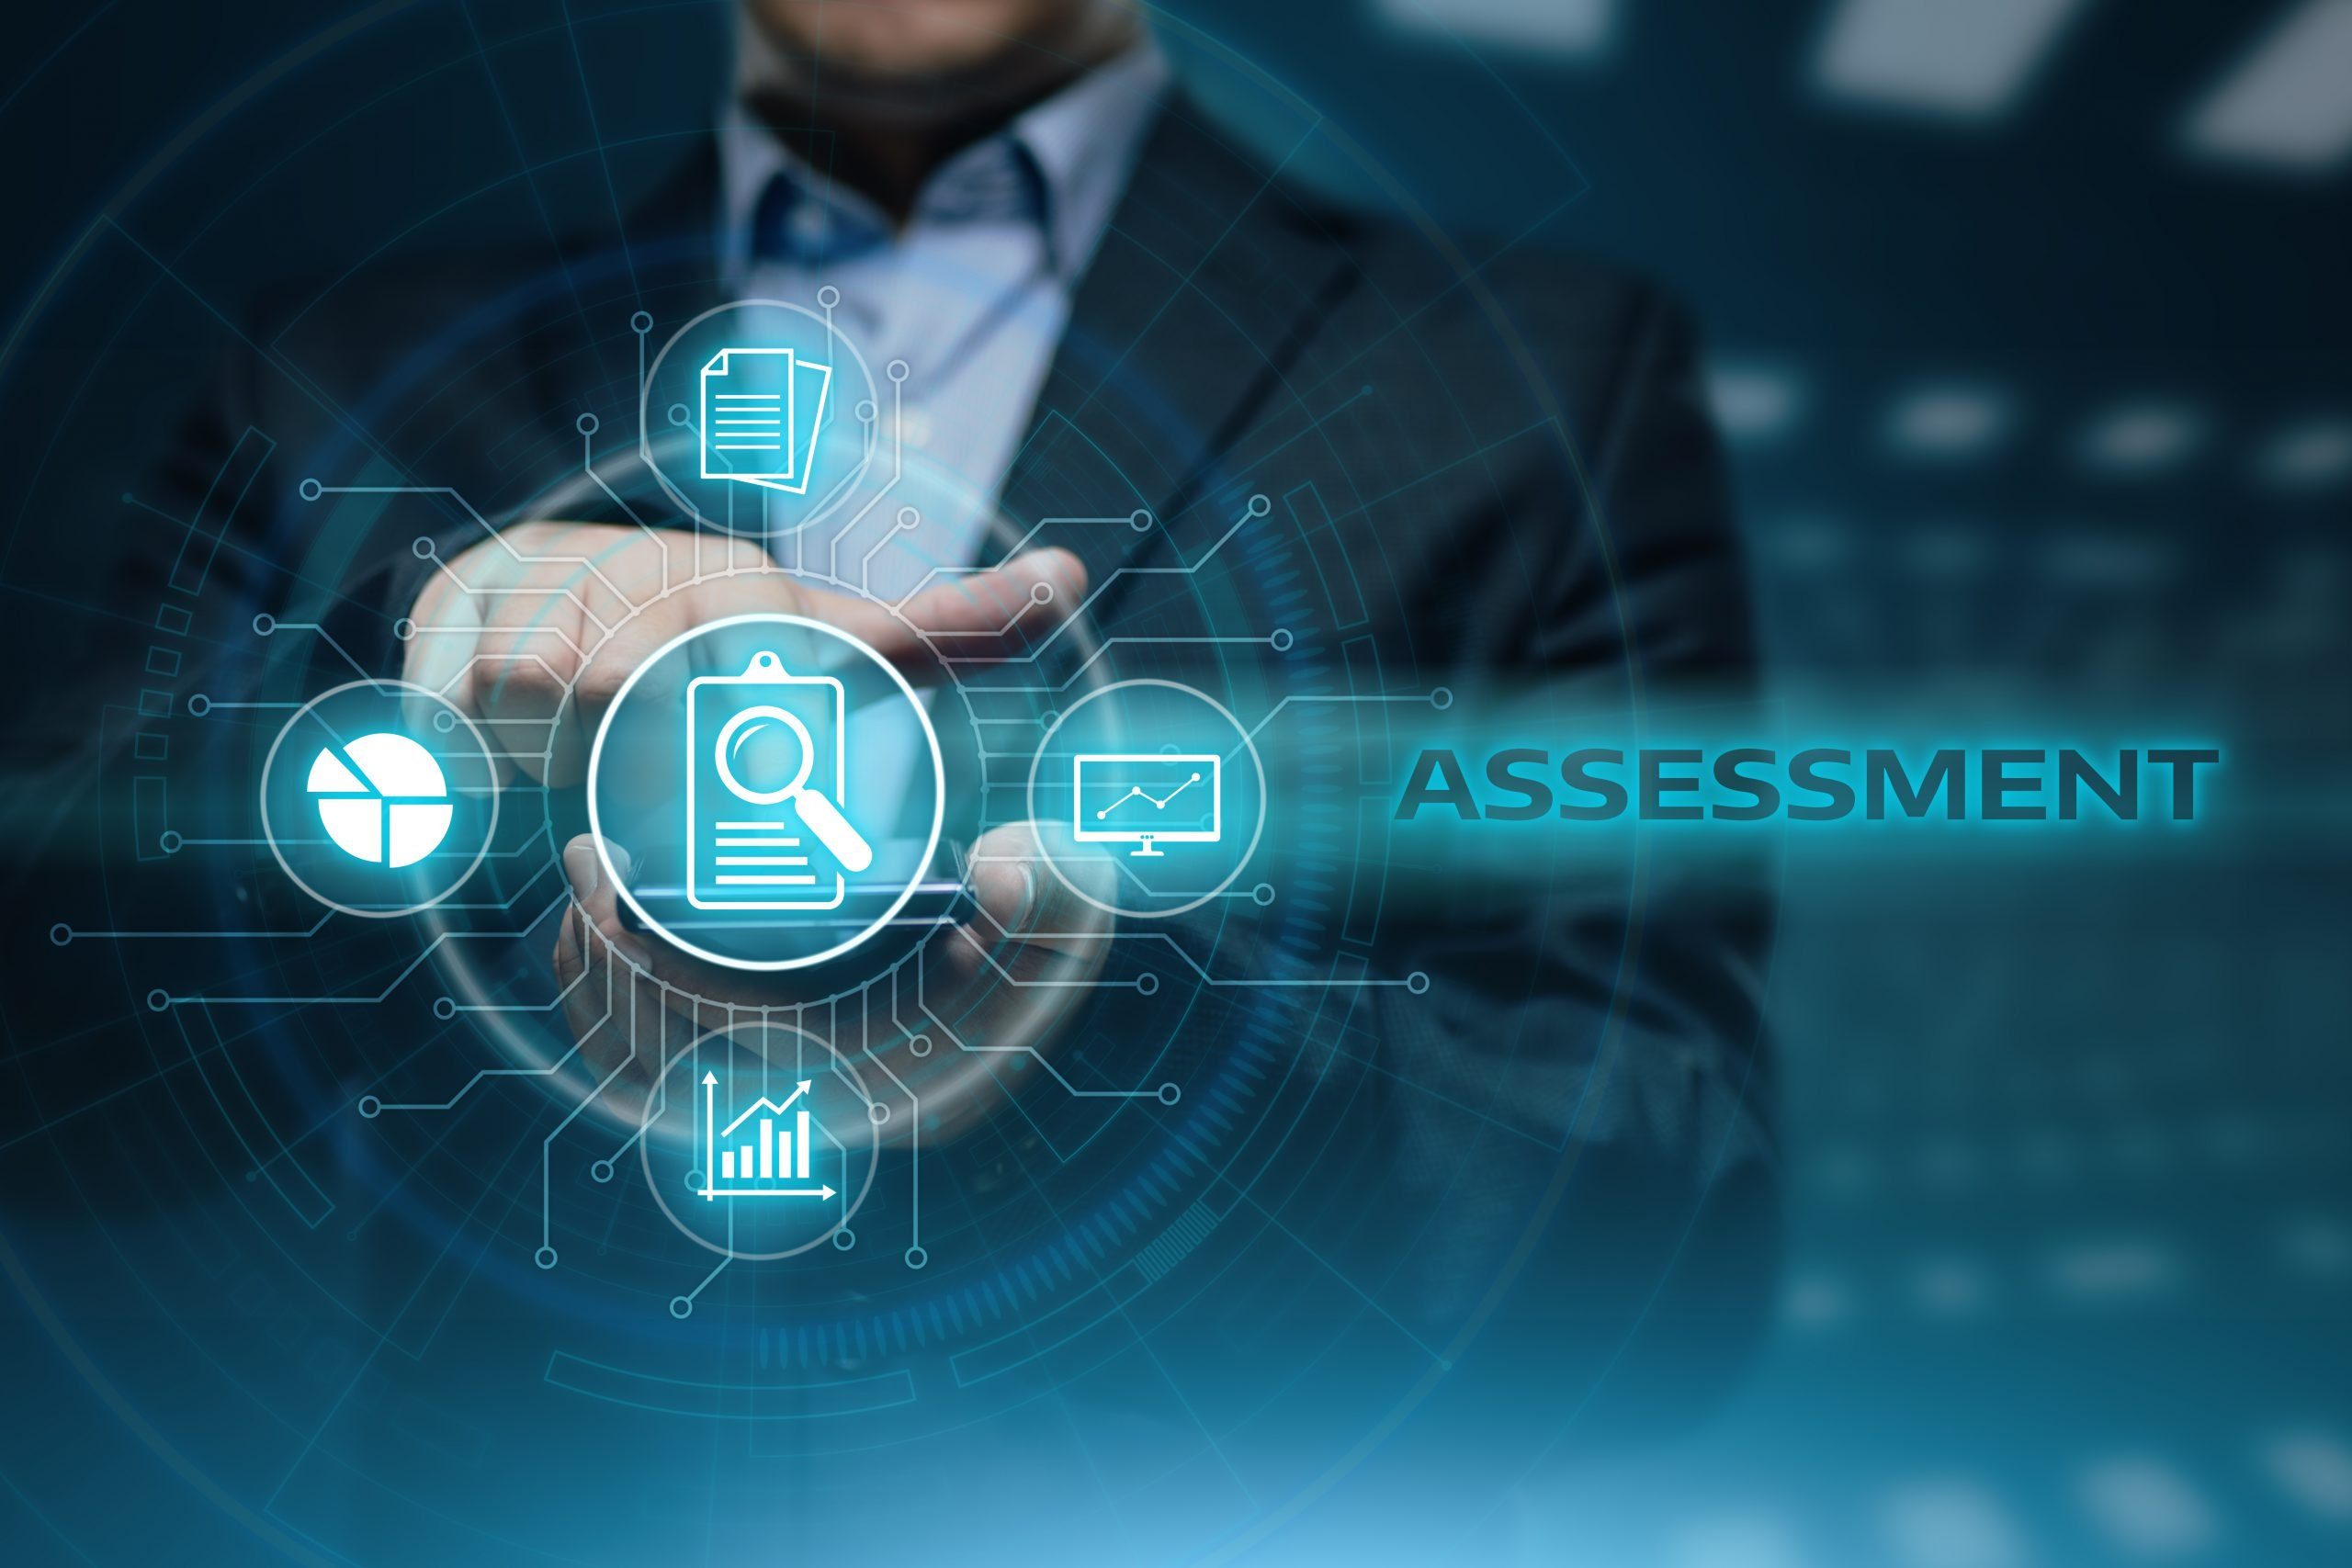 Fortinet Cyber Threat Assessment for SD-WAN, FortiGate, & FortiMail